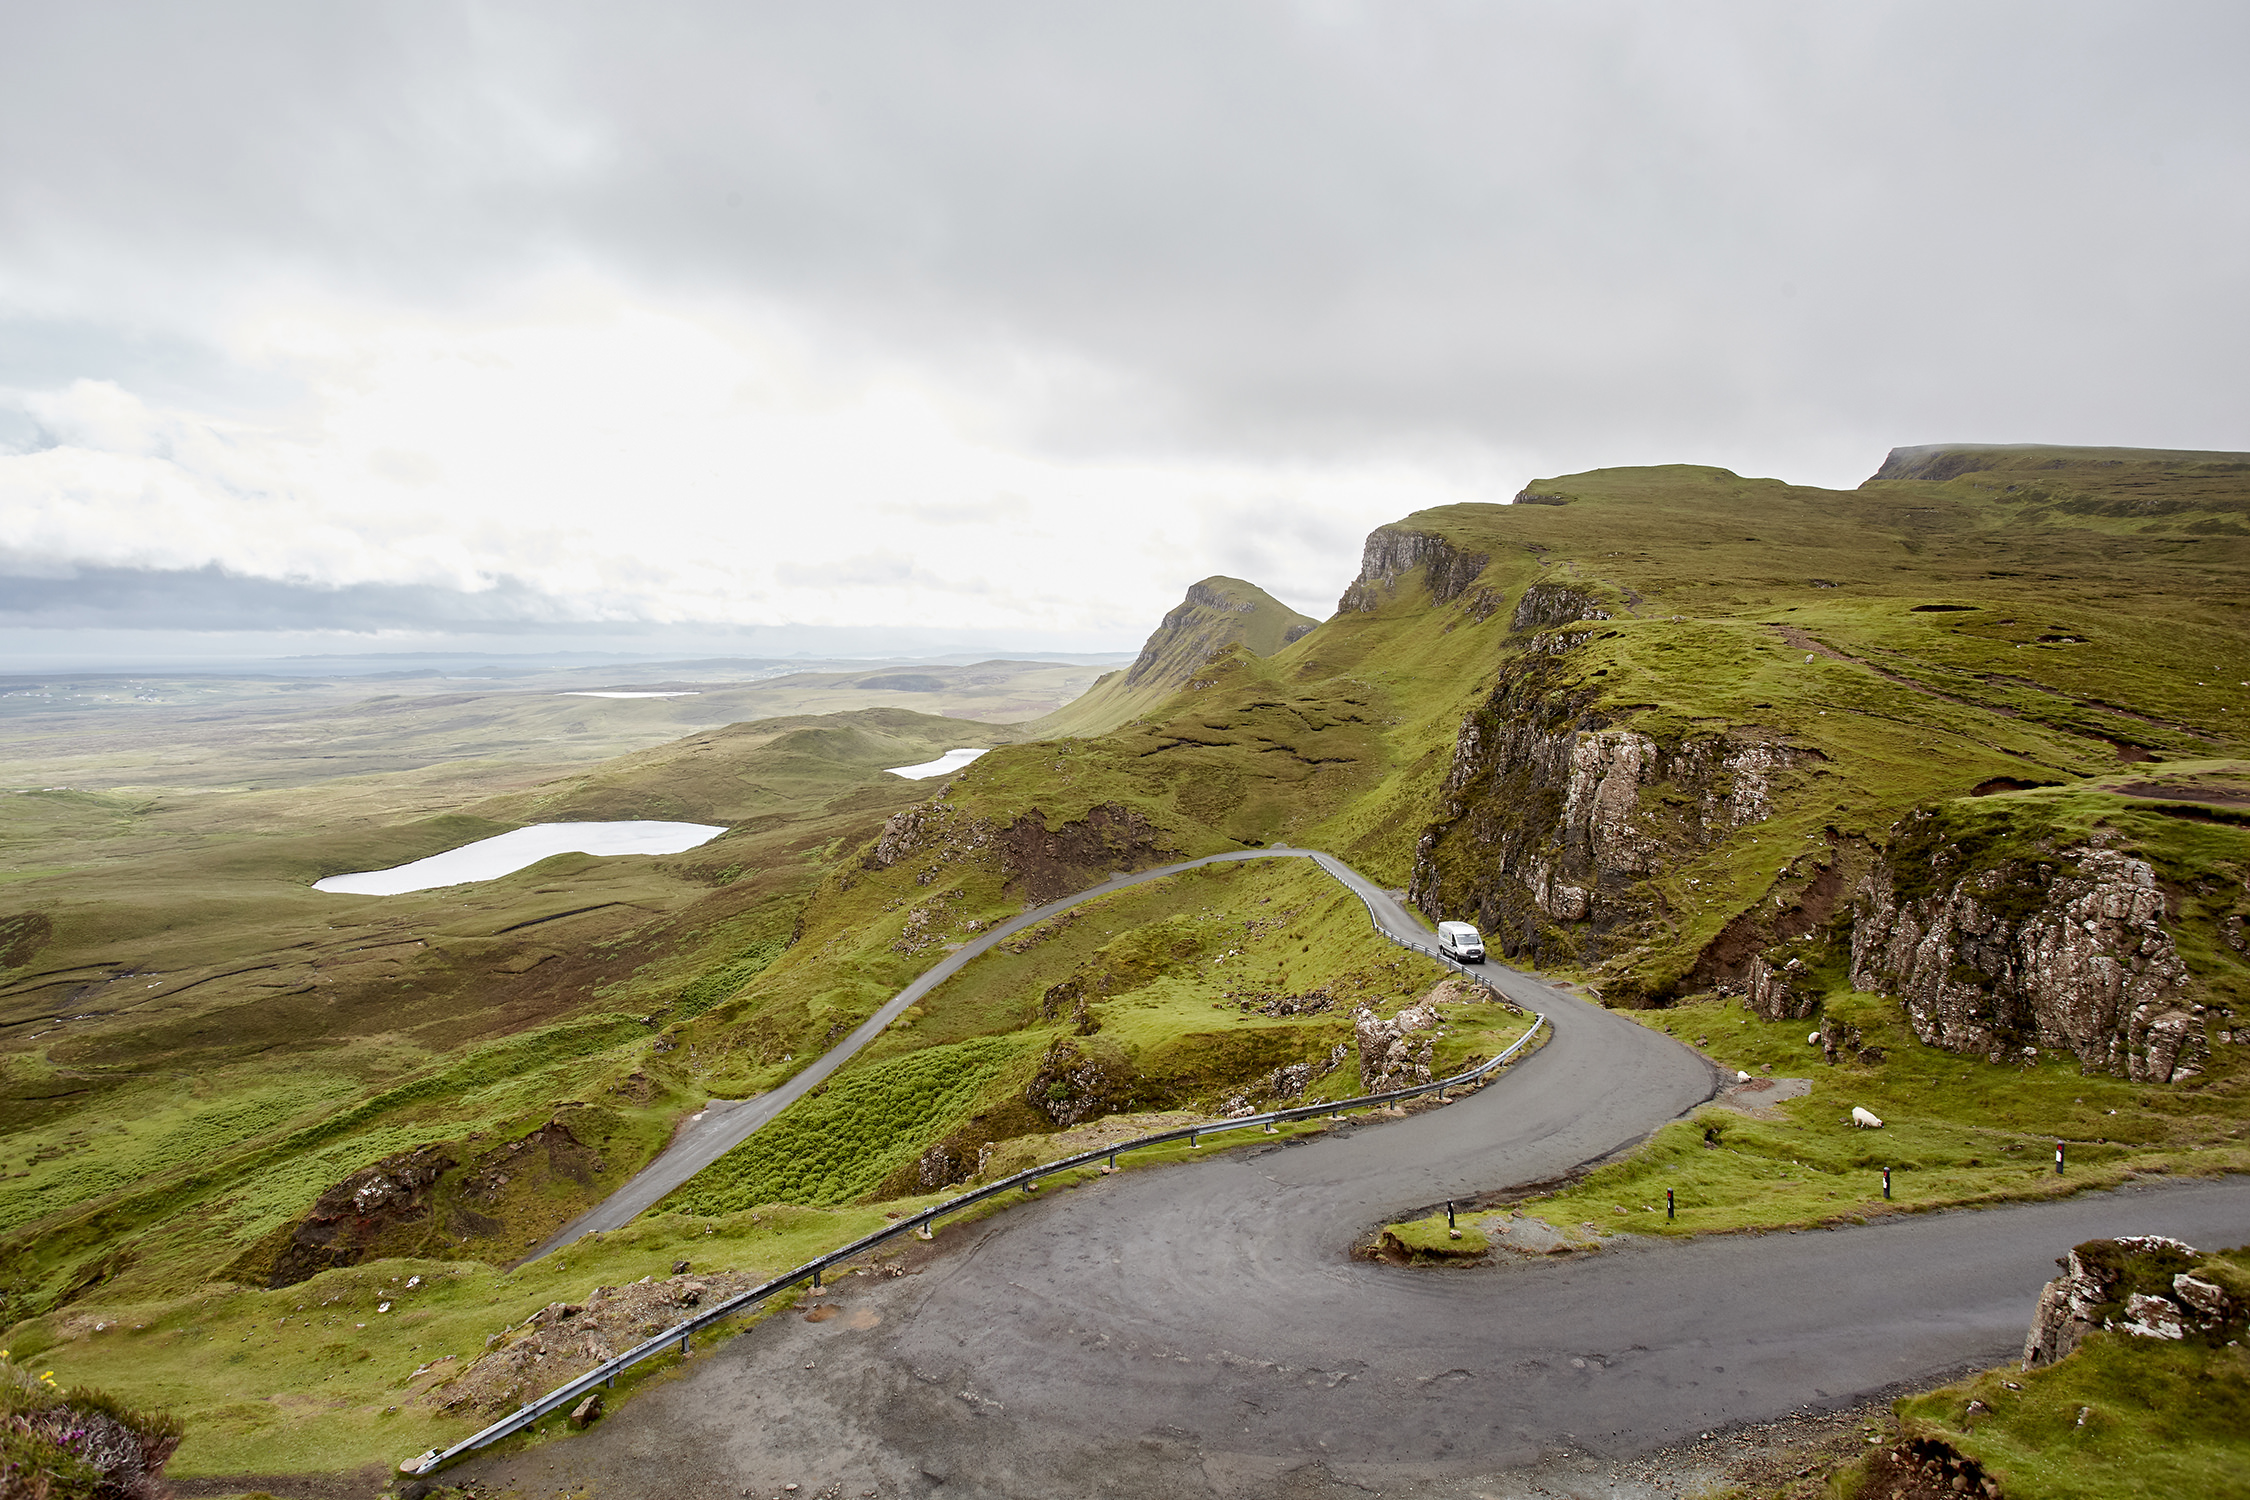 11 Isle Of Skye, Scotland